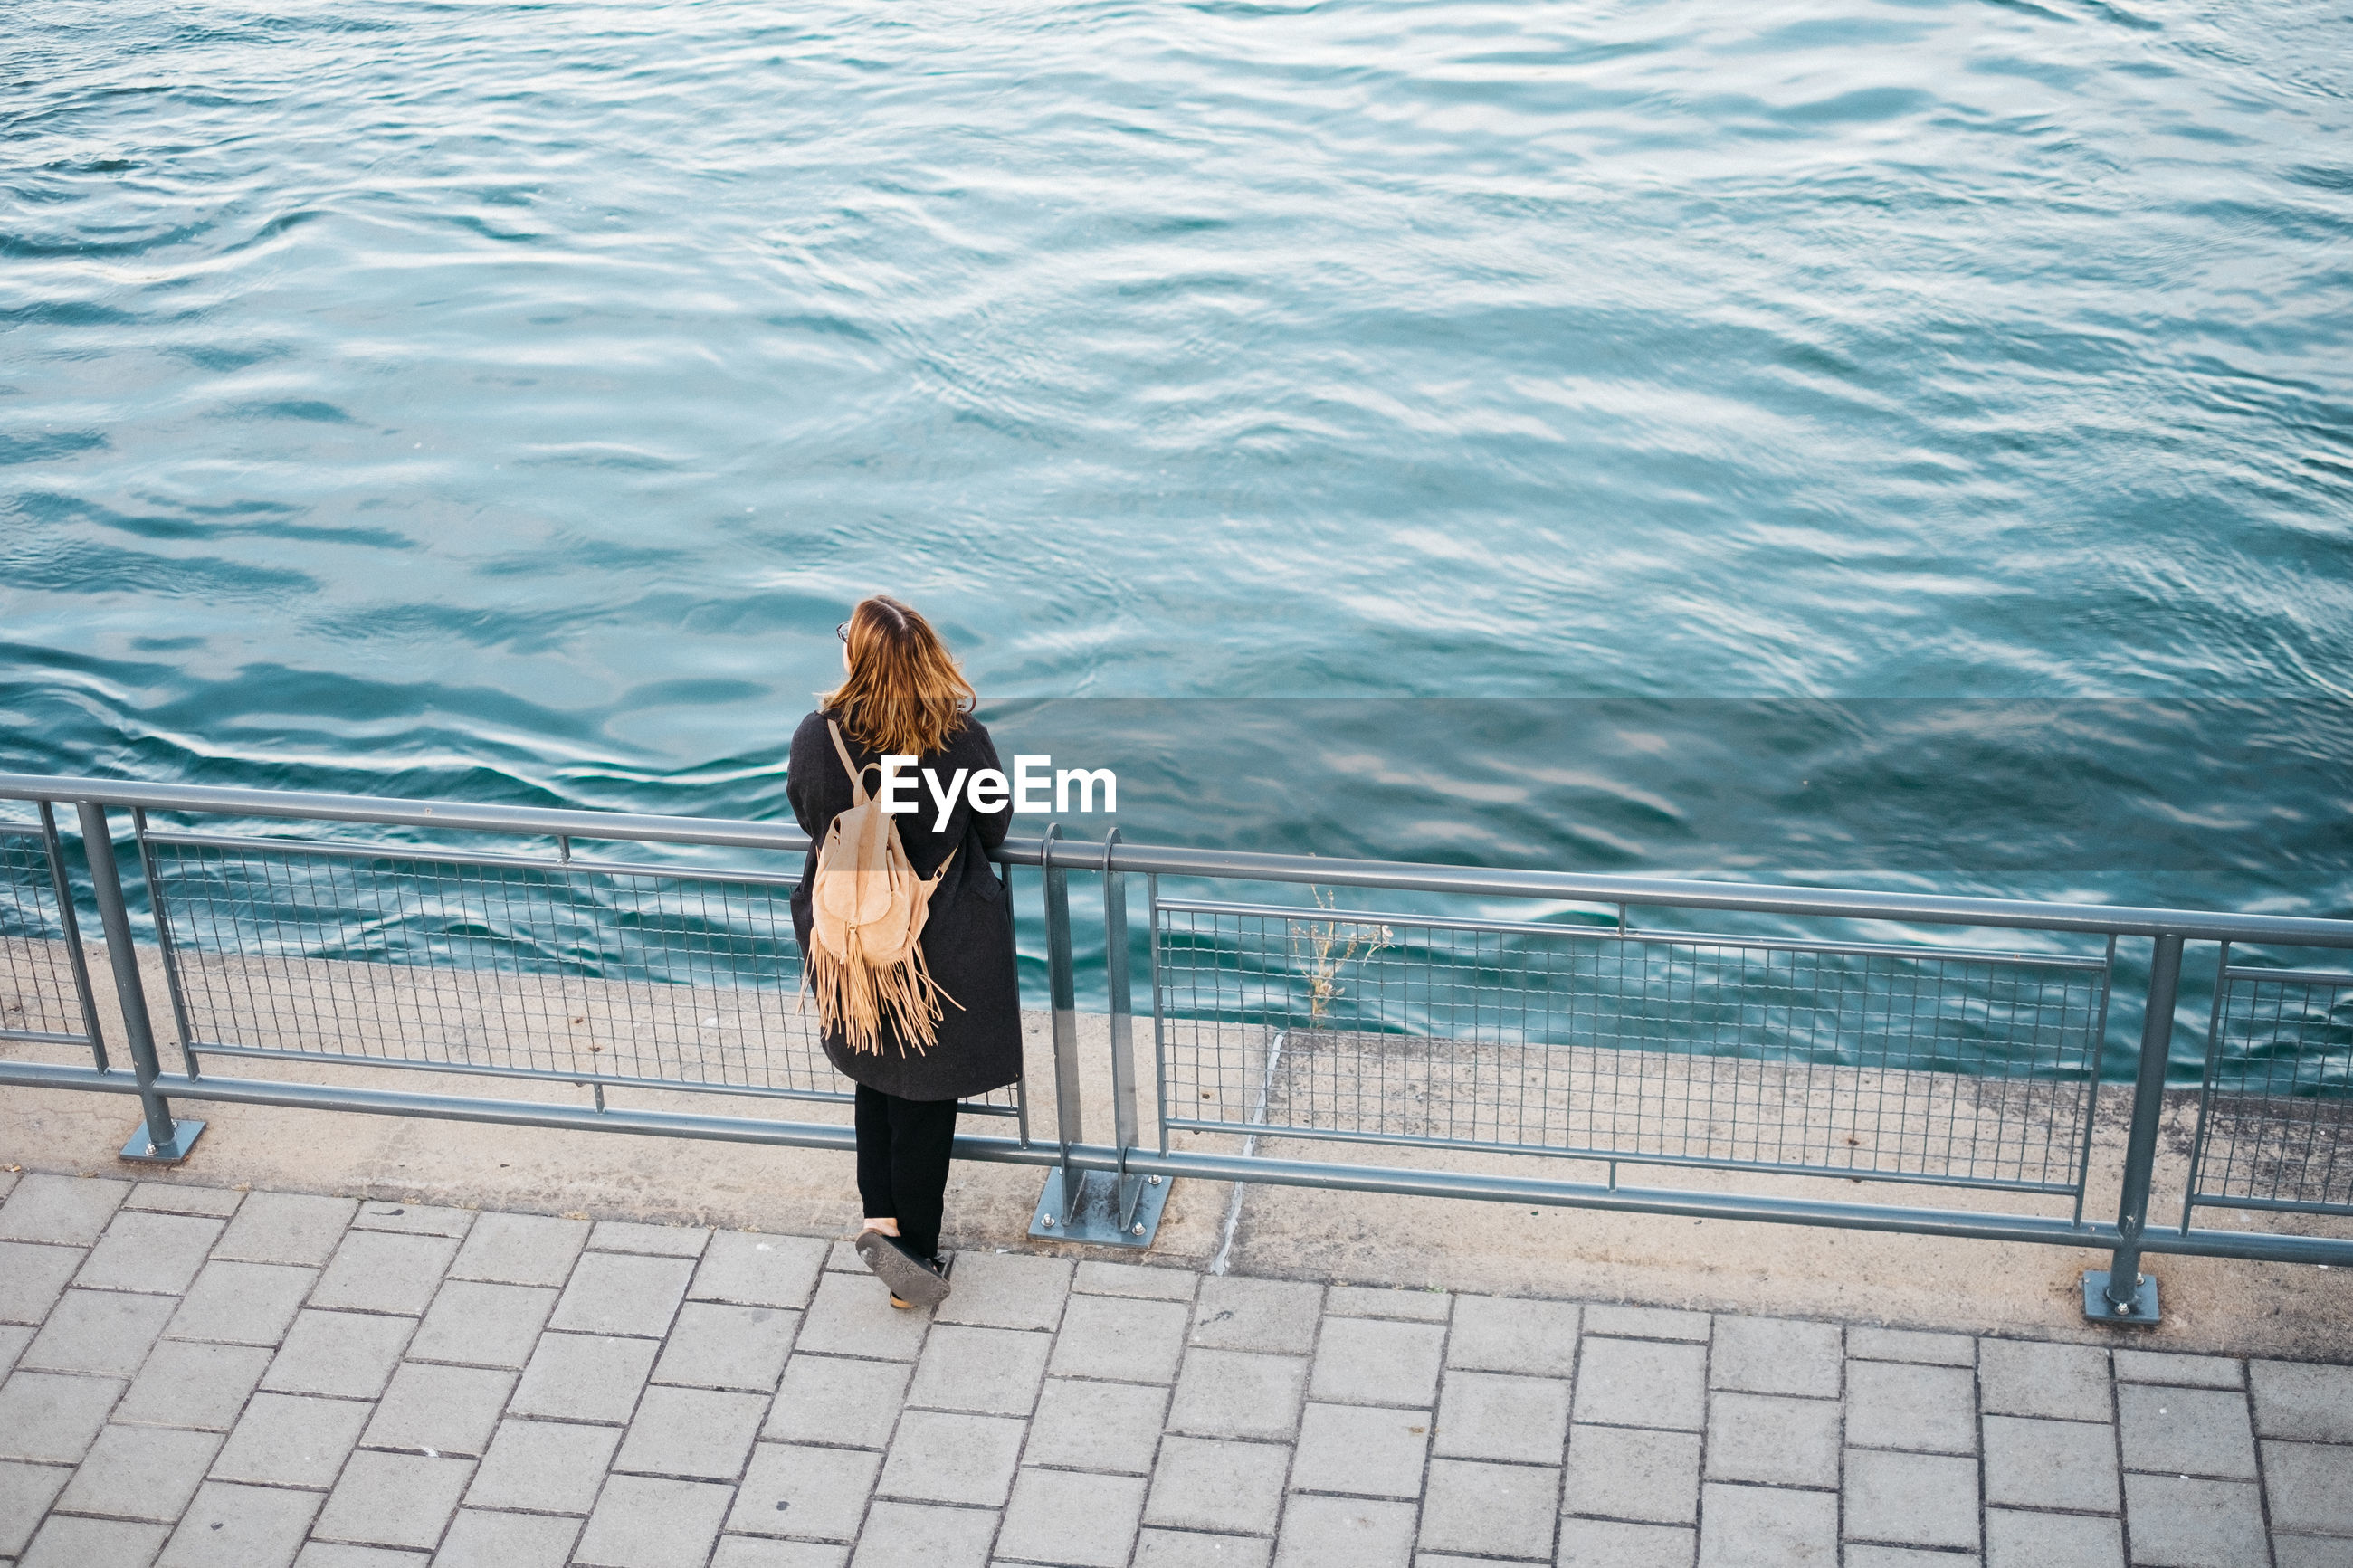 High angle view of woman standing at promenade